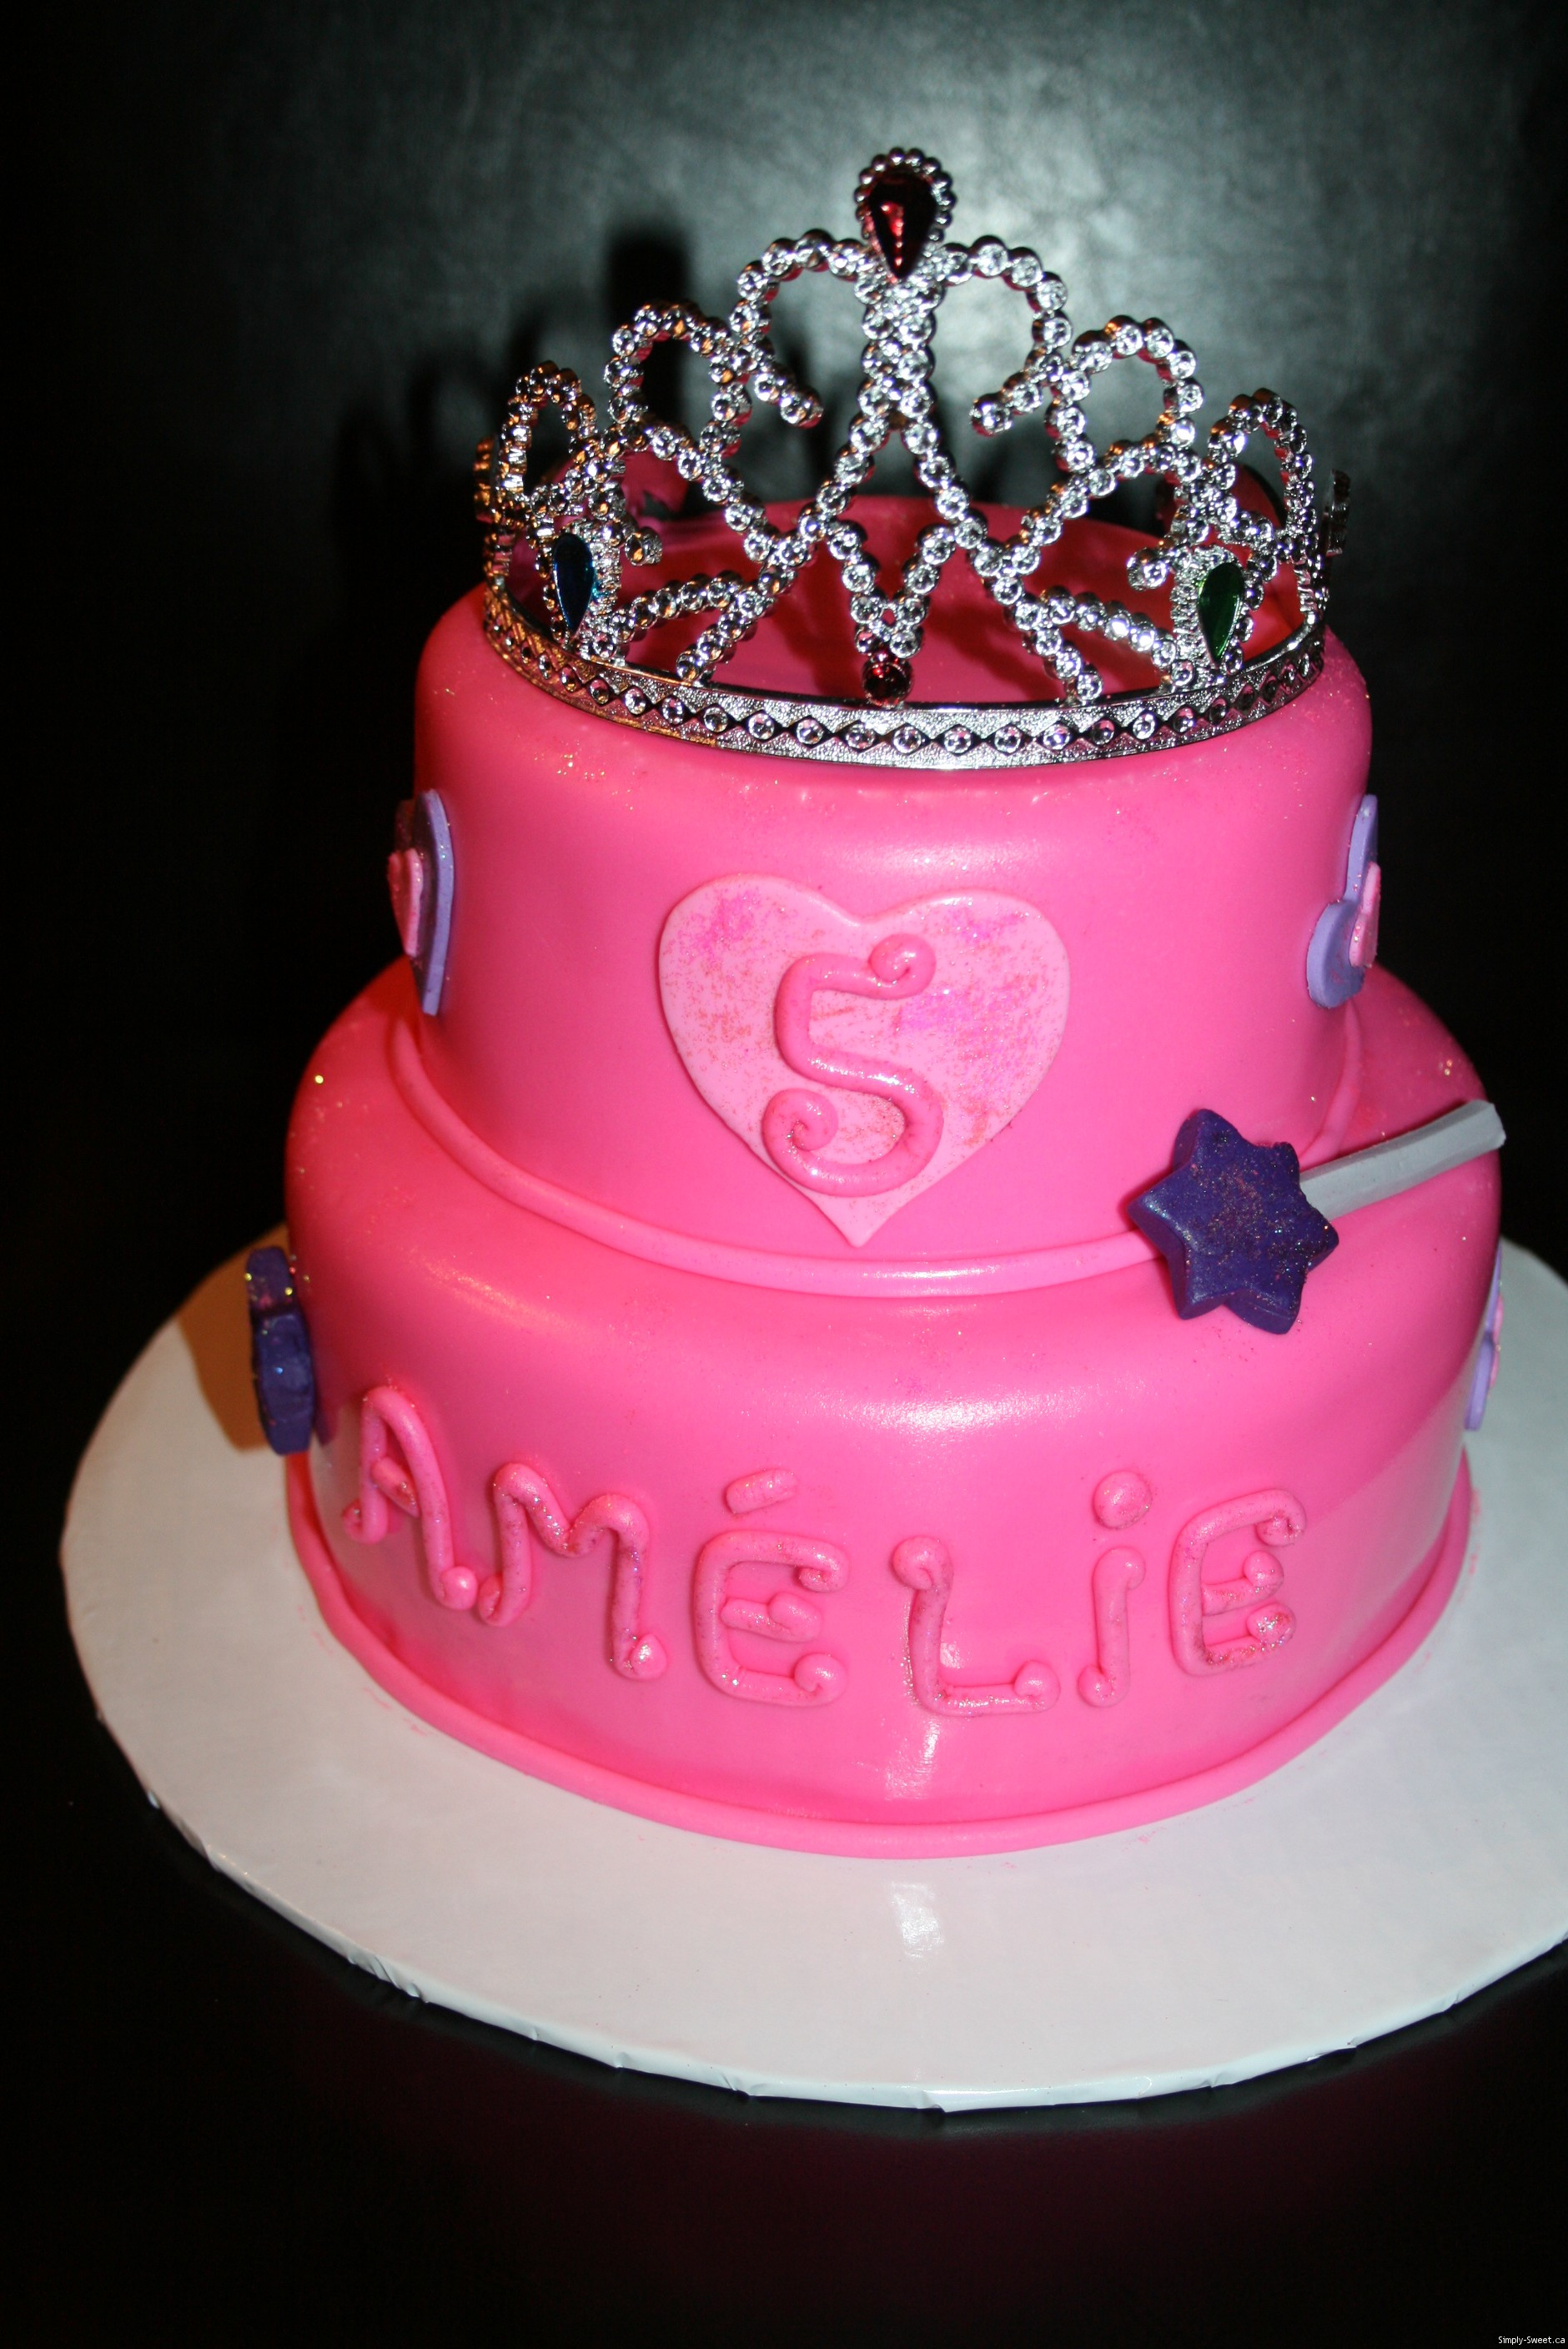 2 Tier Birthday Cake For Princess Amlie Prncess Cake Simply Sweet